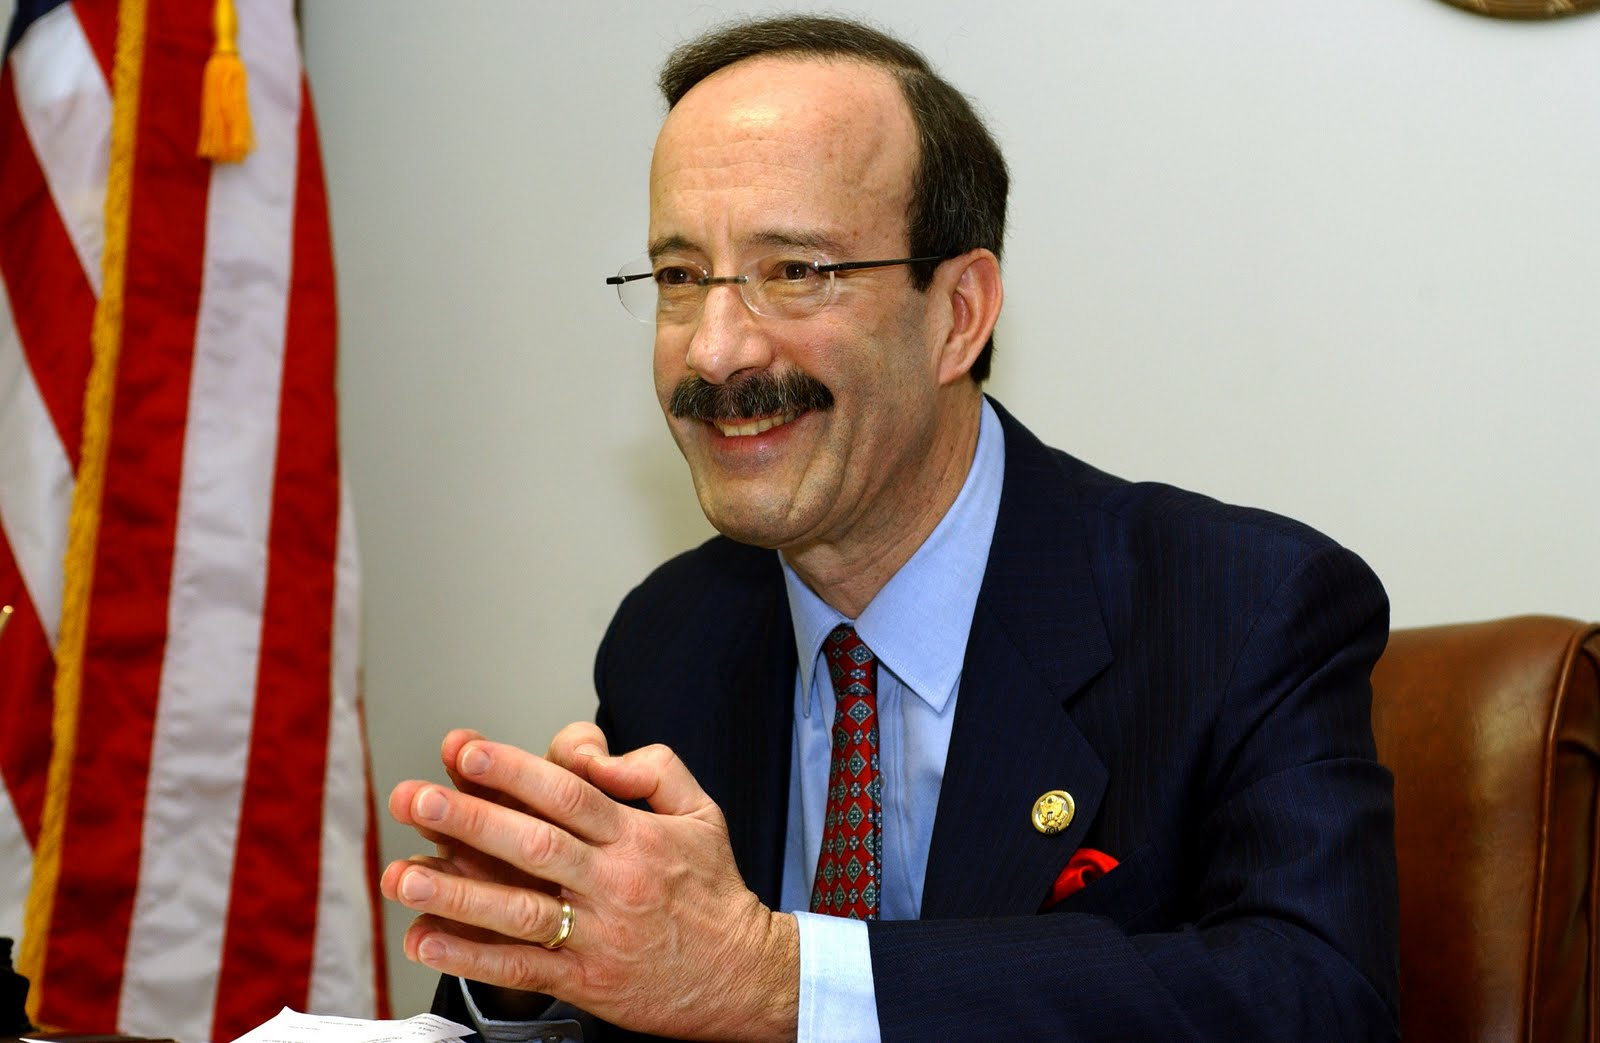 Eliot Engel Eliot Engel Biography Eliot Engel39s Famous Quotes